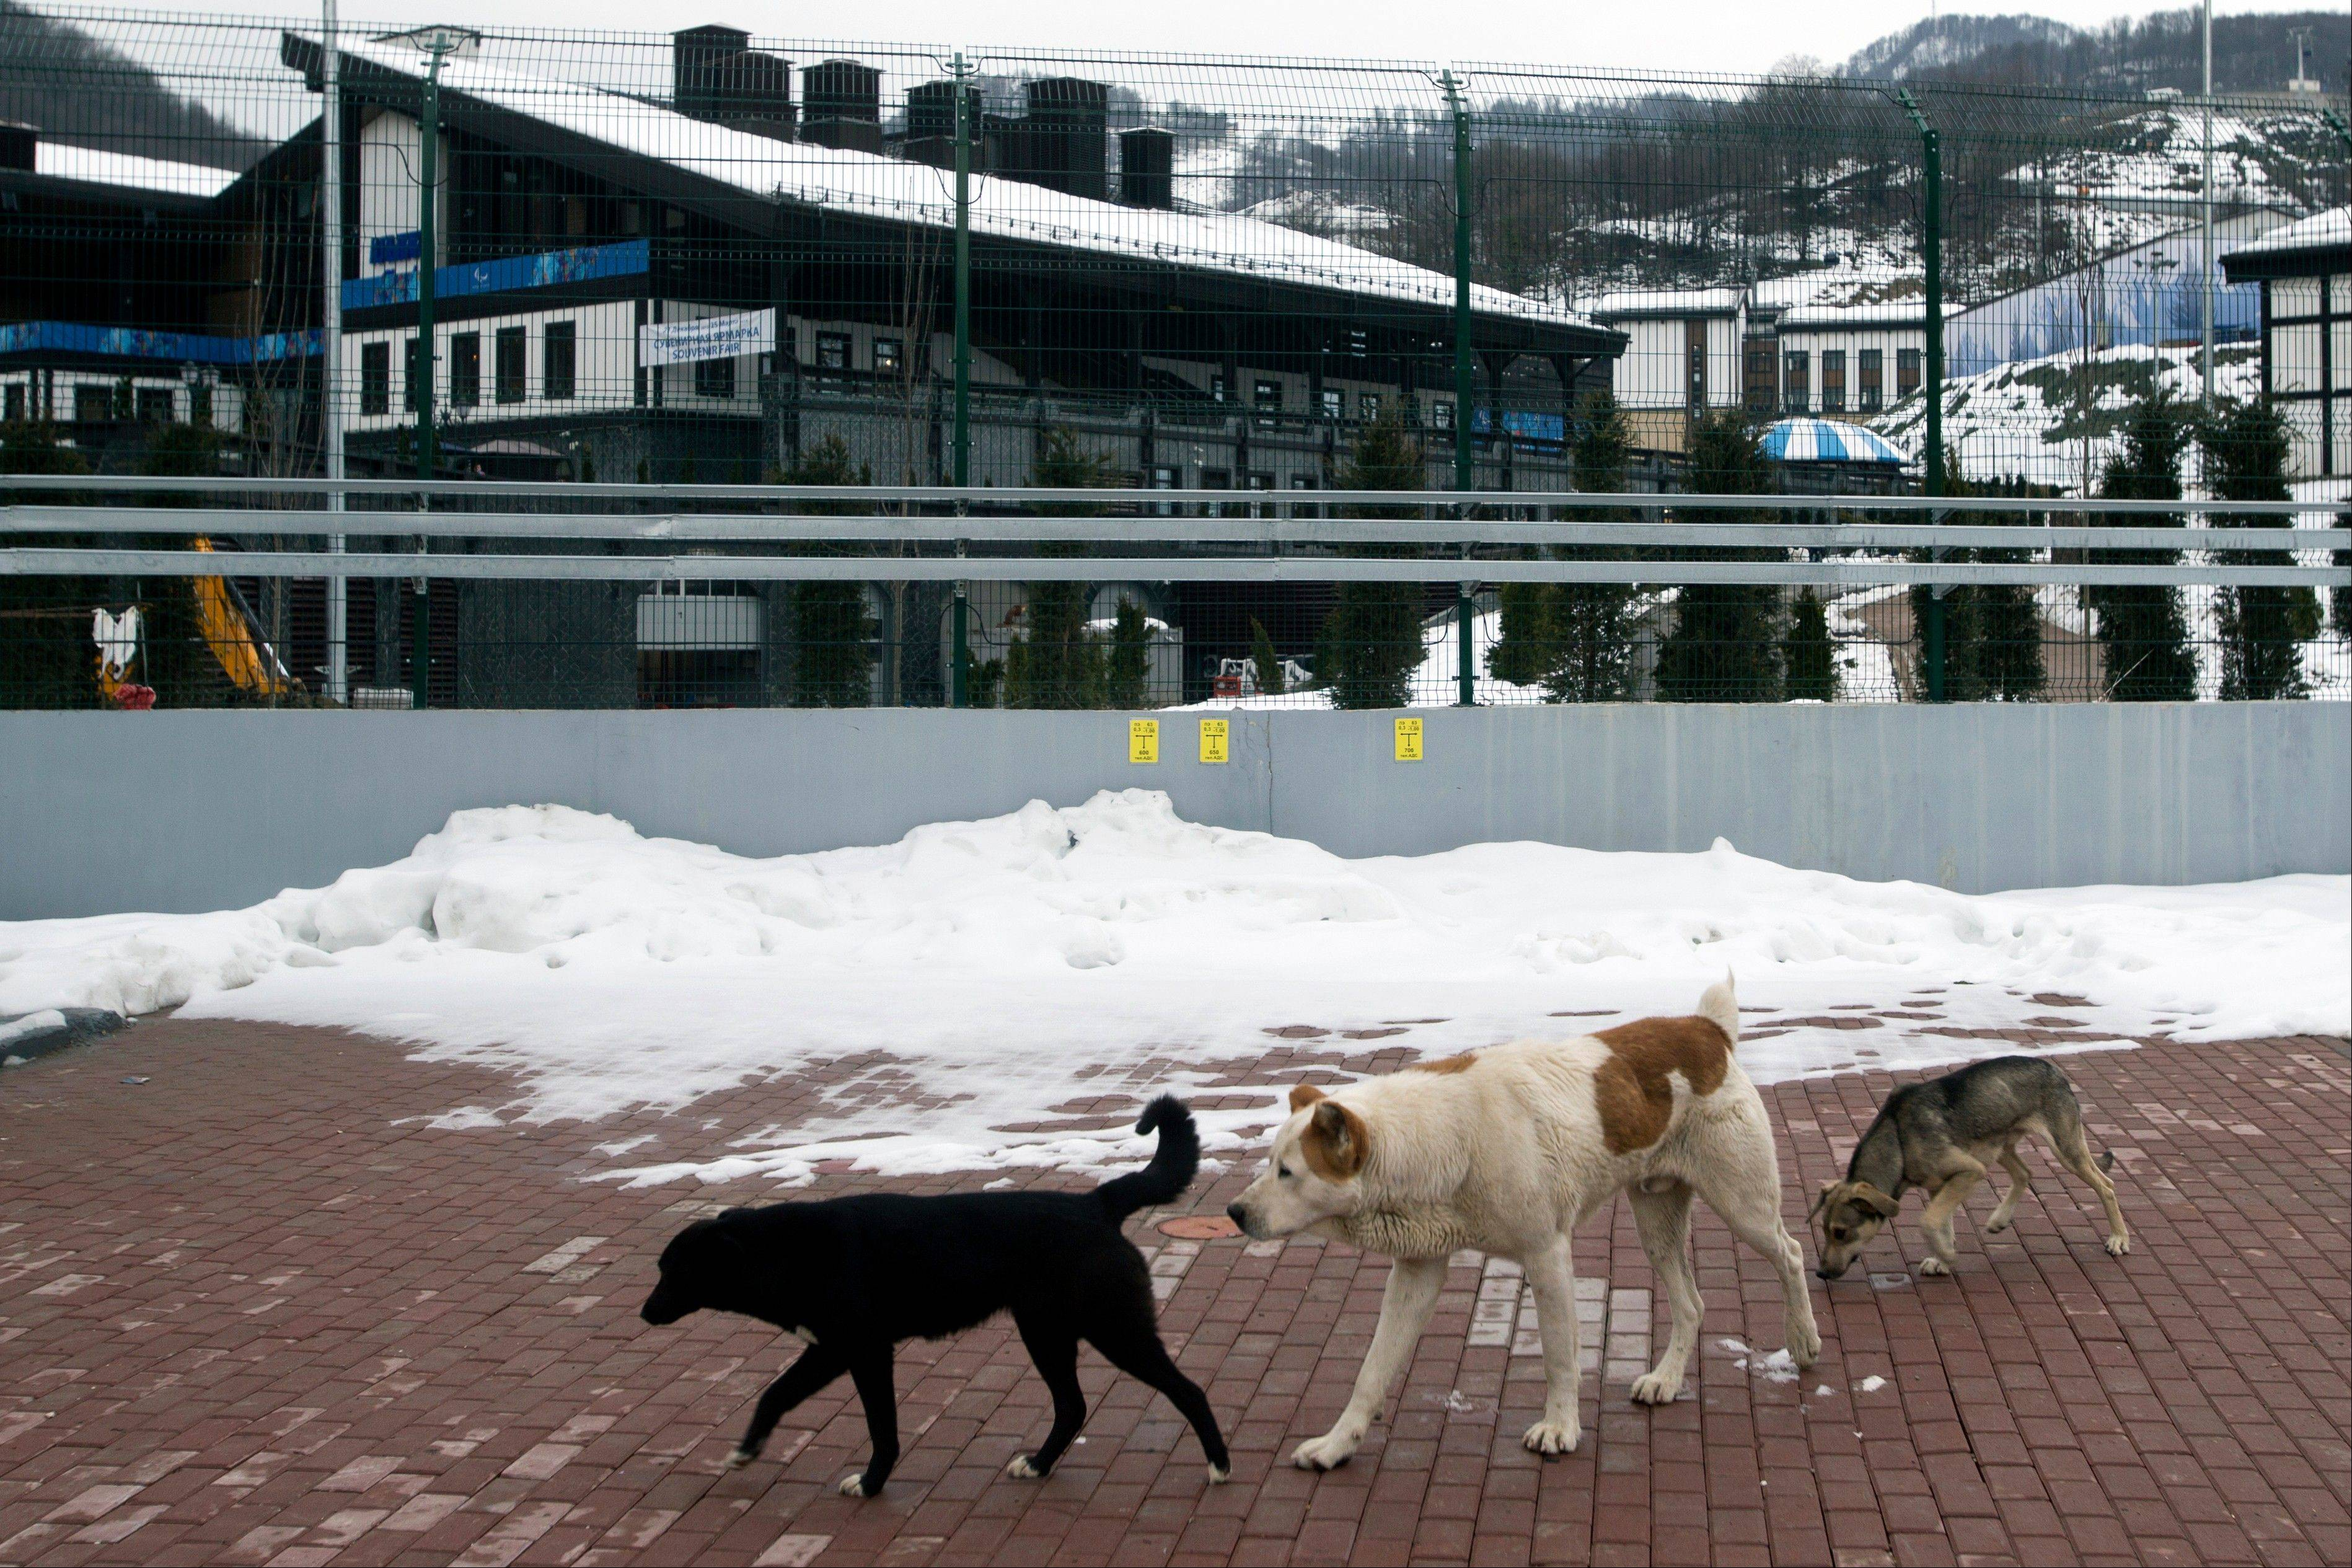 Stray dogs sit outside the Rosa Khutor Extreme Park course, a venue for the snowboarding and freestyle competitions of the 2014 Winter Olympics, in Sochi, Russia, Monday, Feb. 3, 2014.